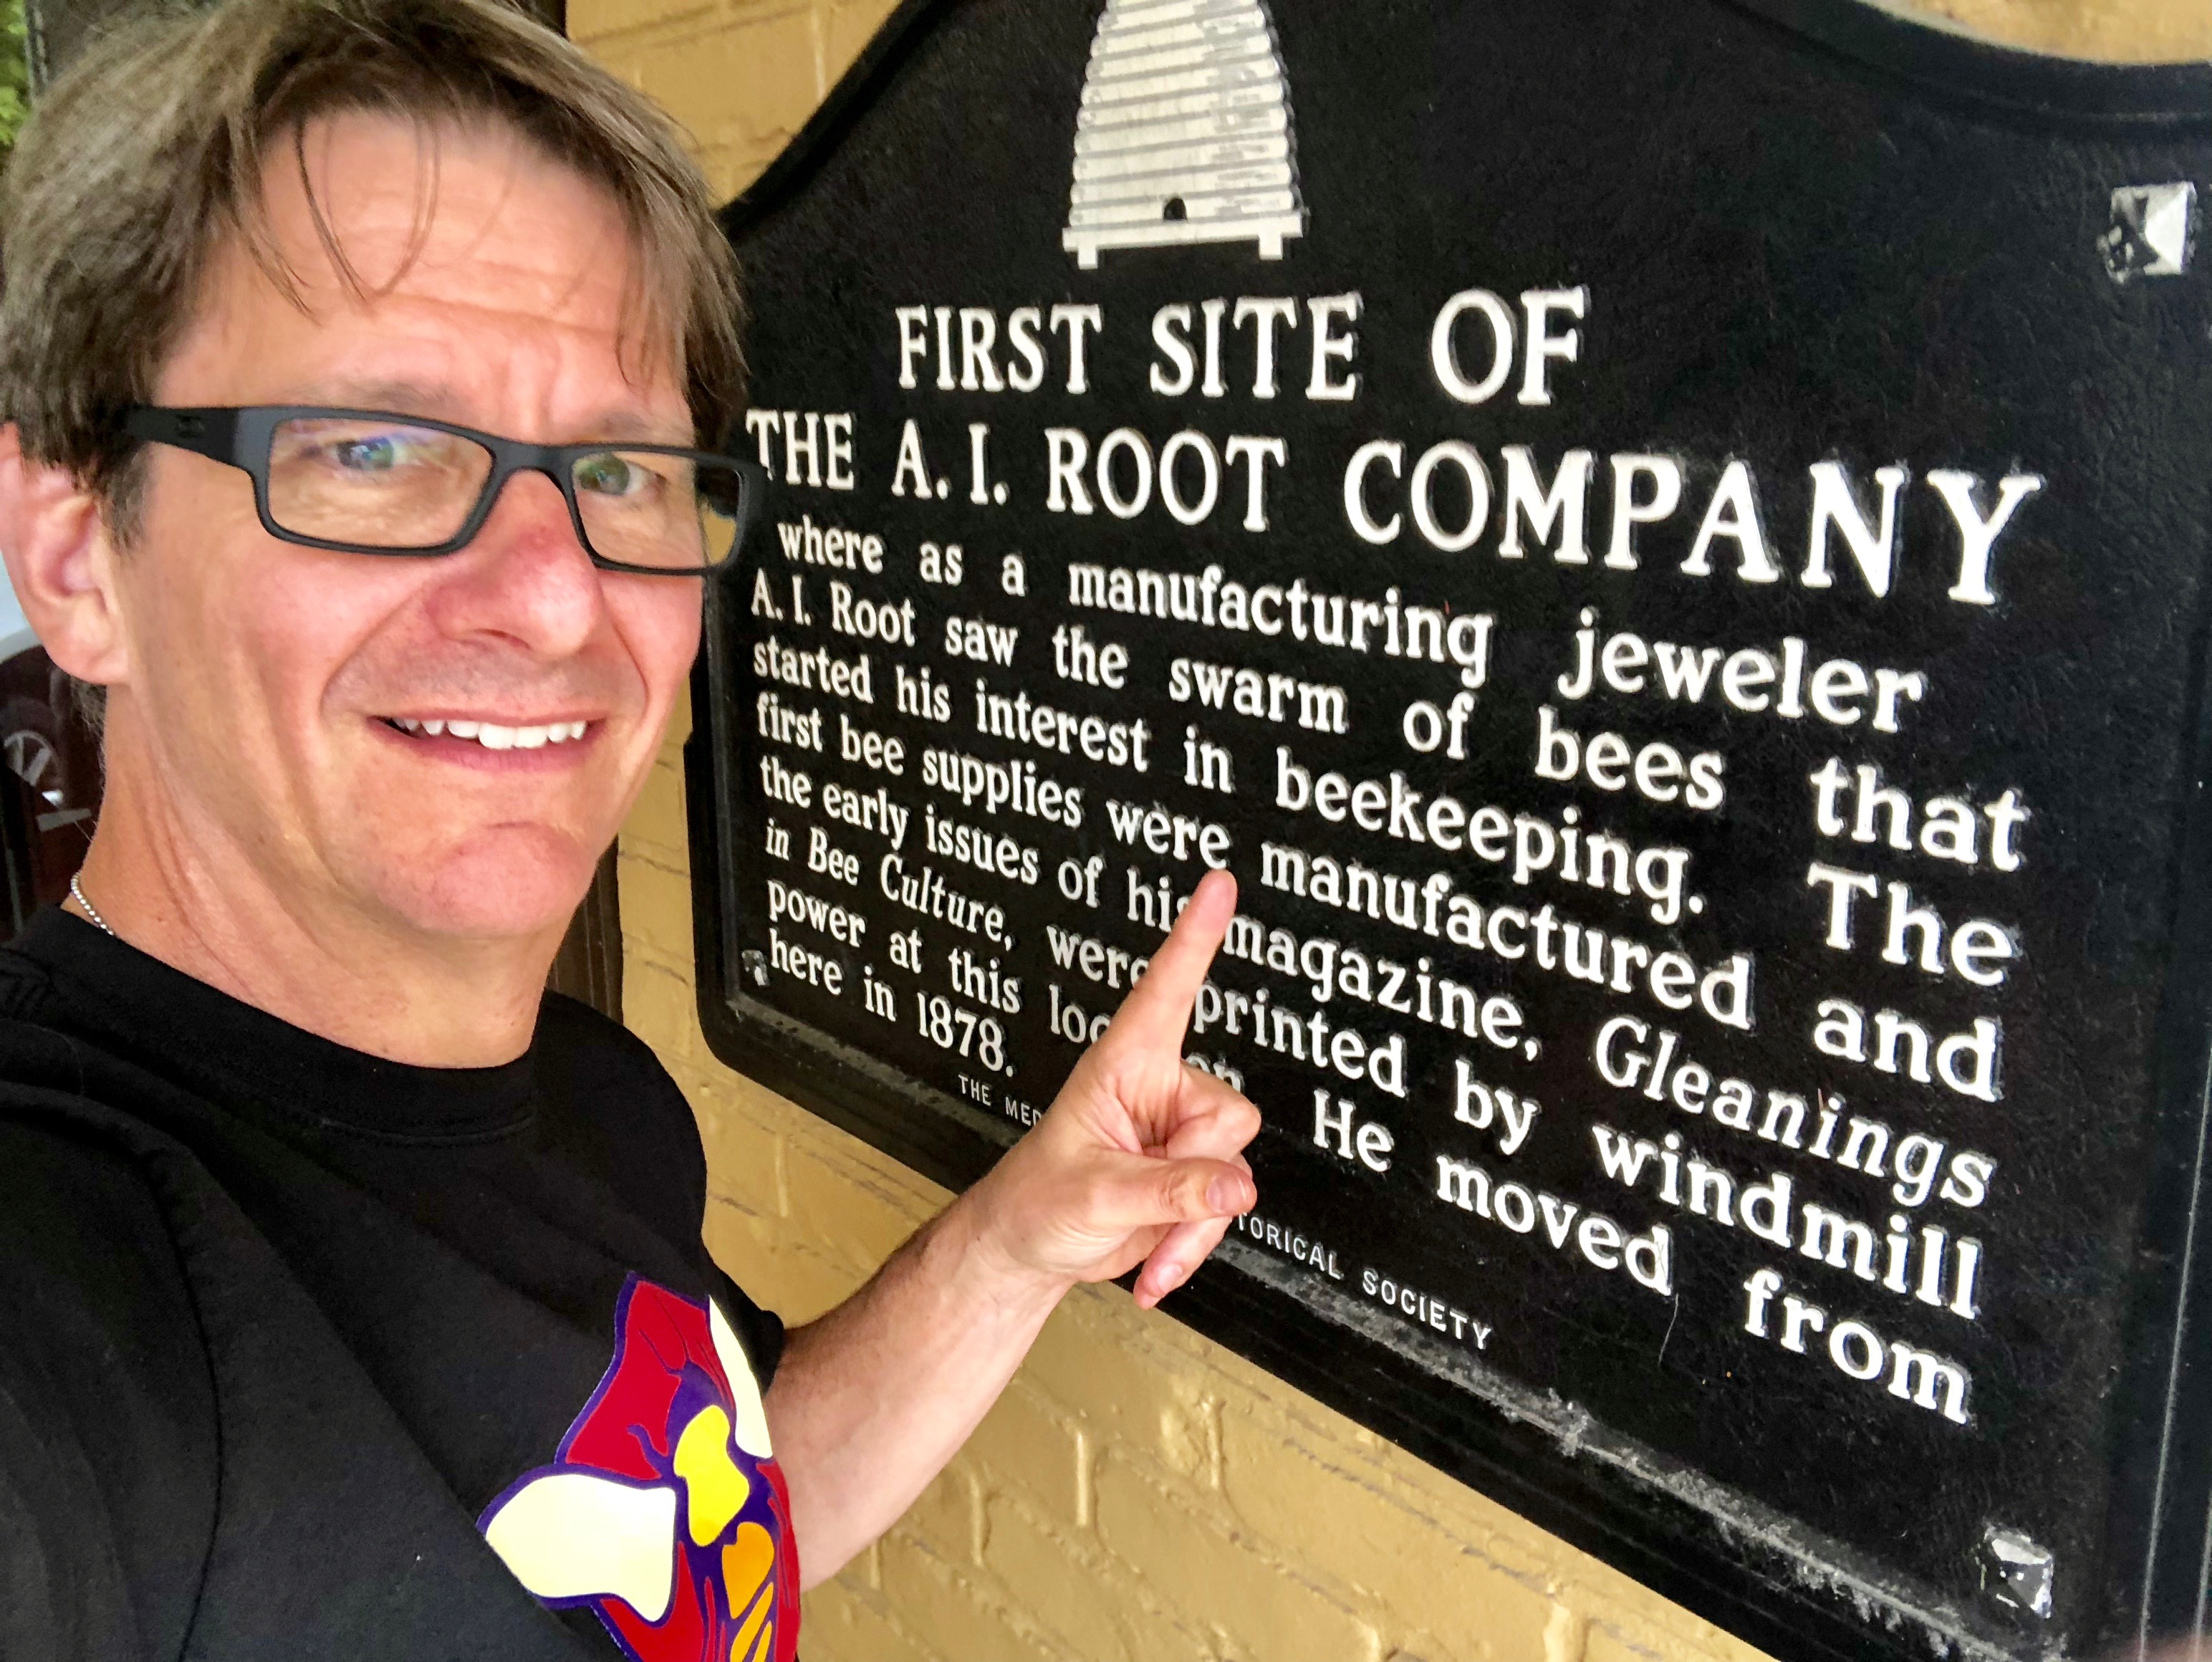 Jeff Visiting A.I. Root History in Medina, OH